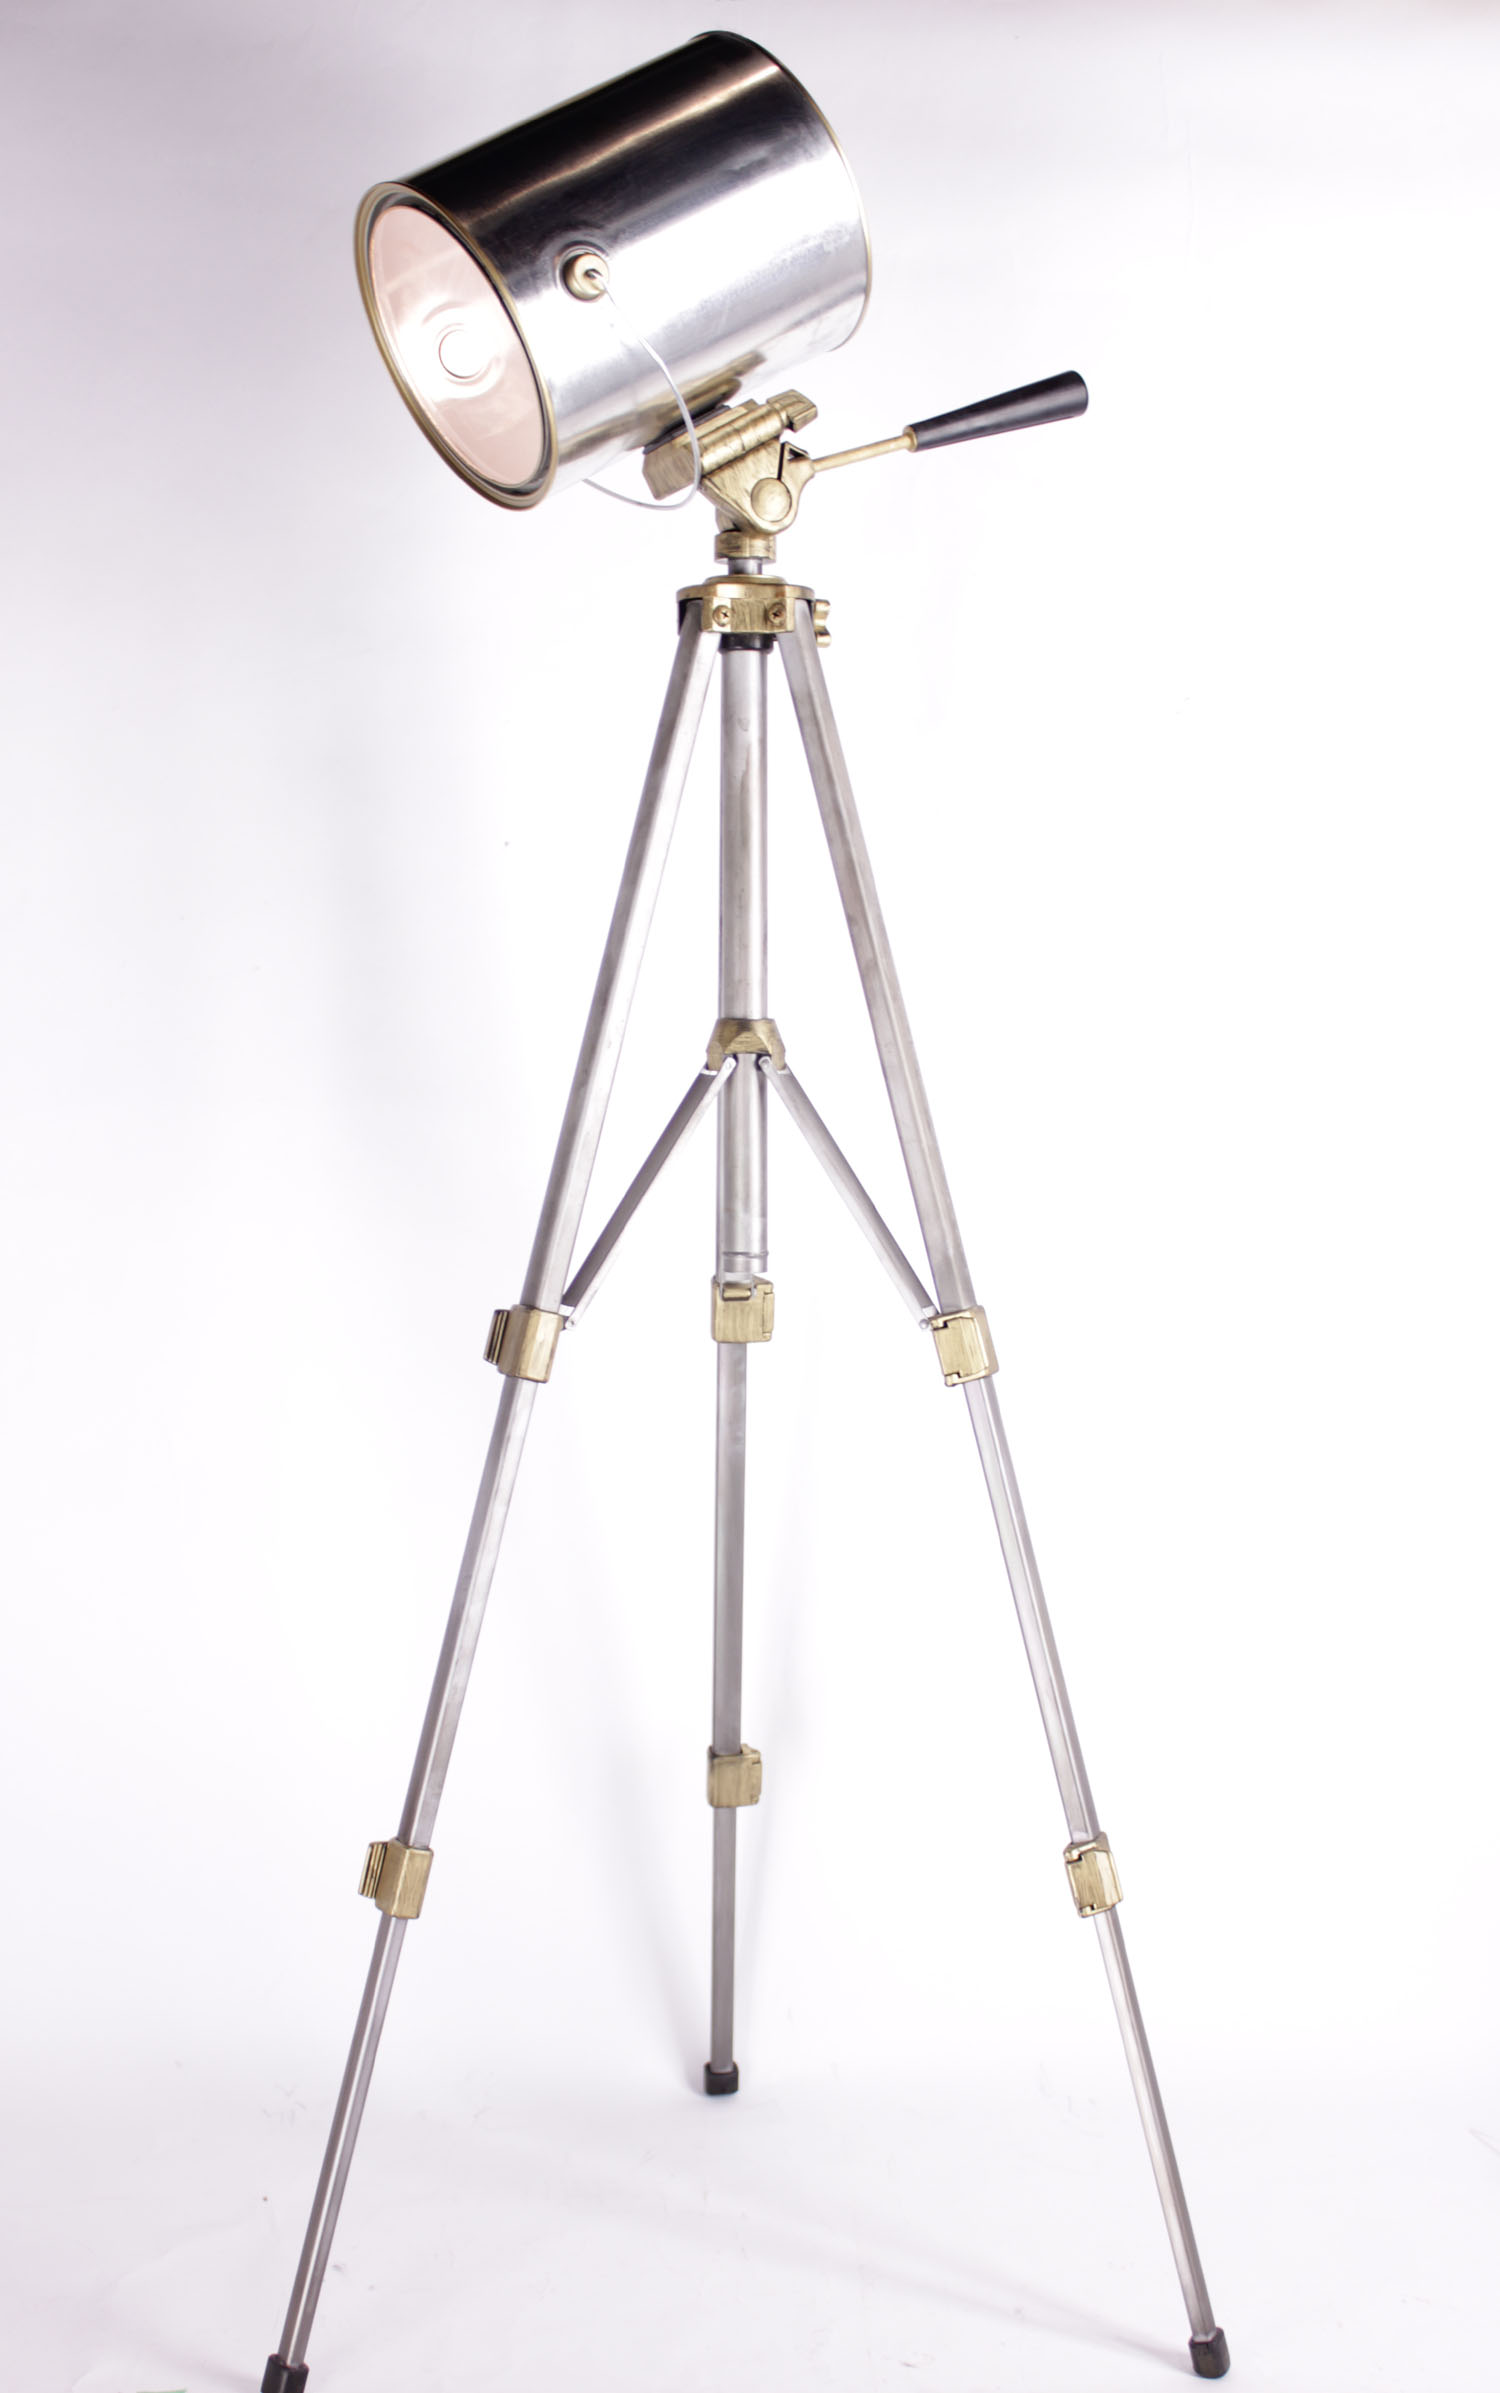 Diy spotlight floor lamp marc and mandy show - Tripod spotlight lamp ...